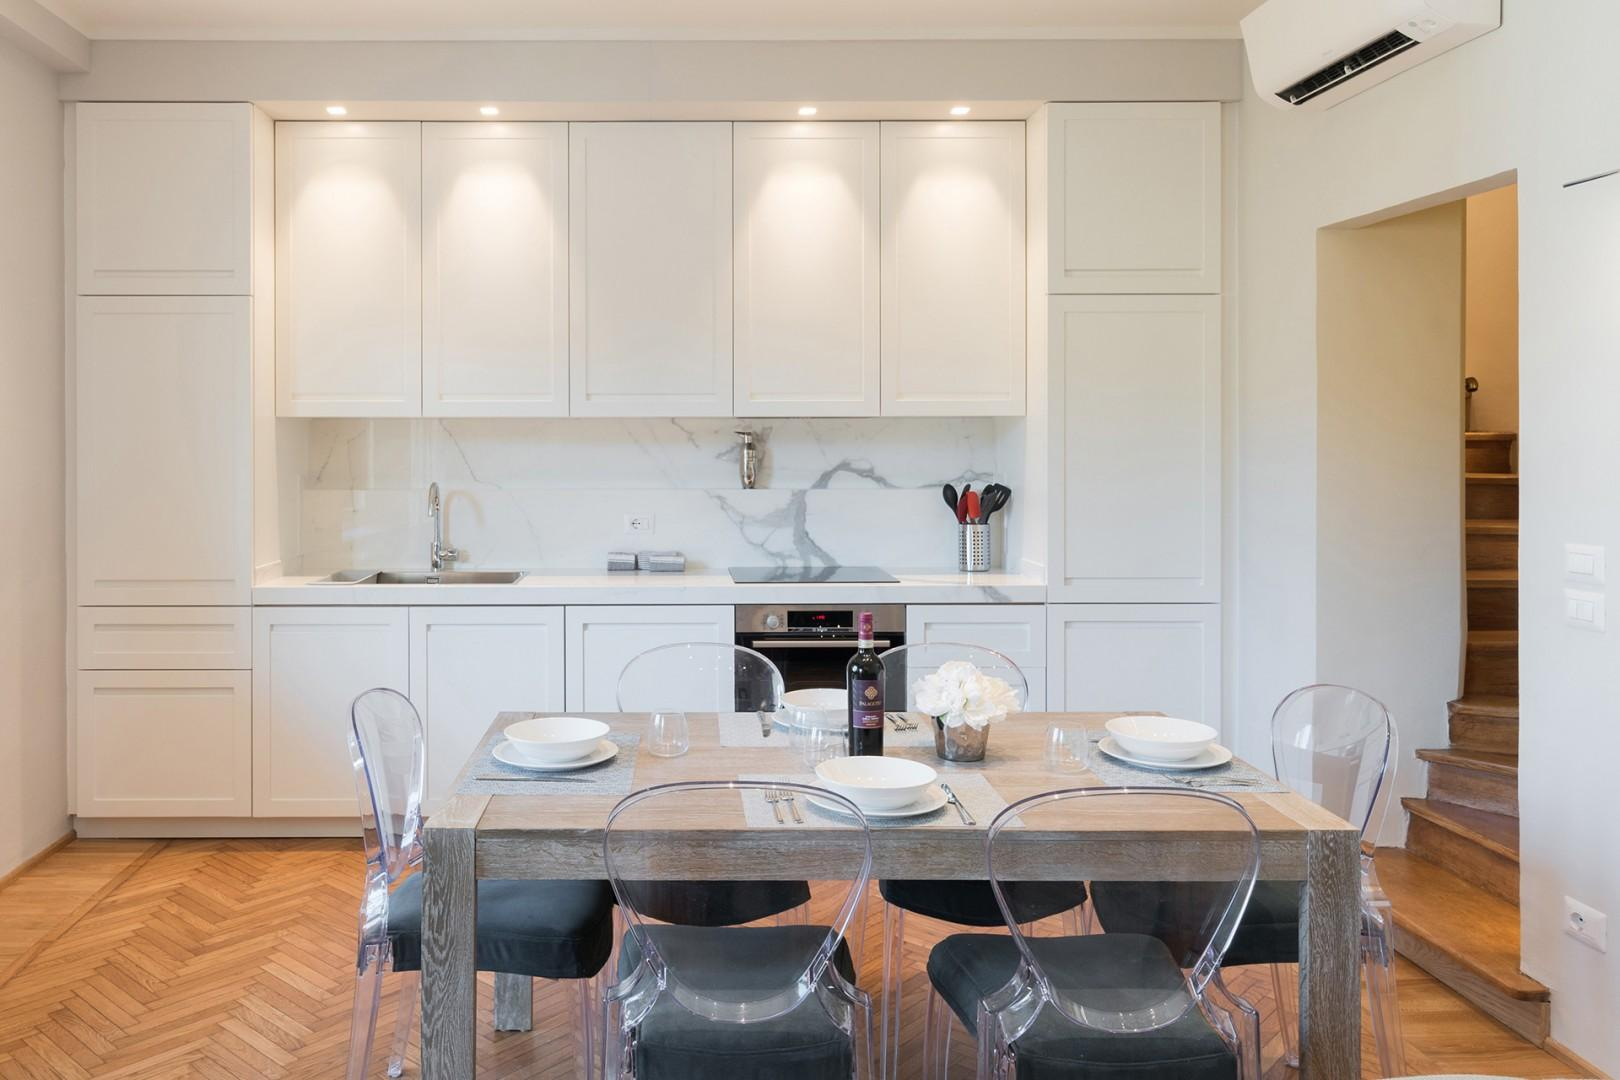 Easy access kitchen with high quality marble countertops.